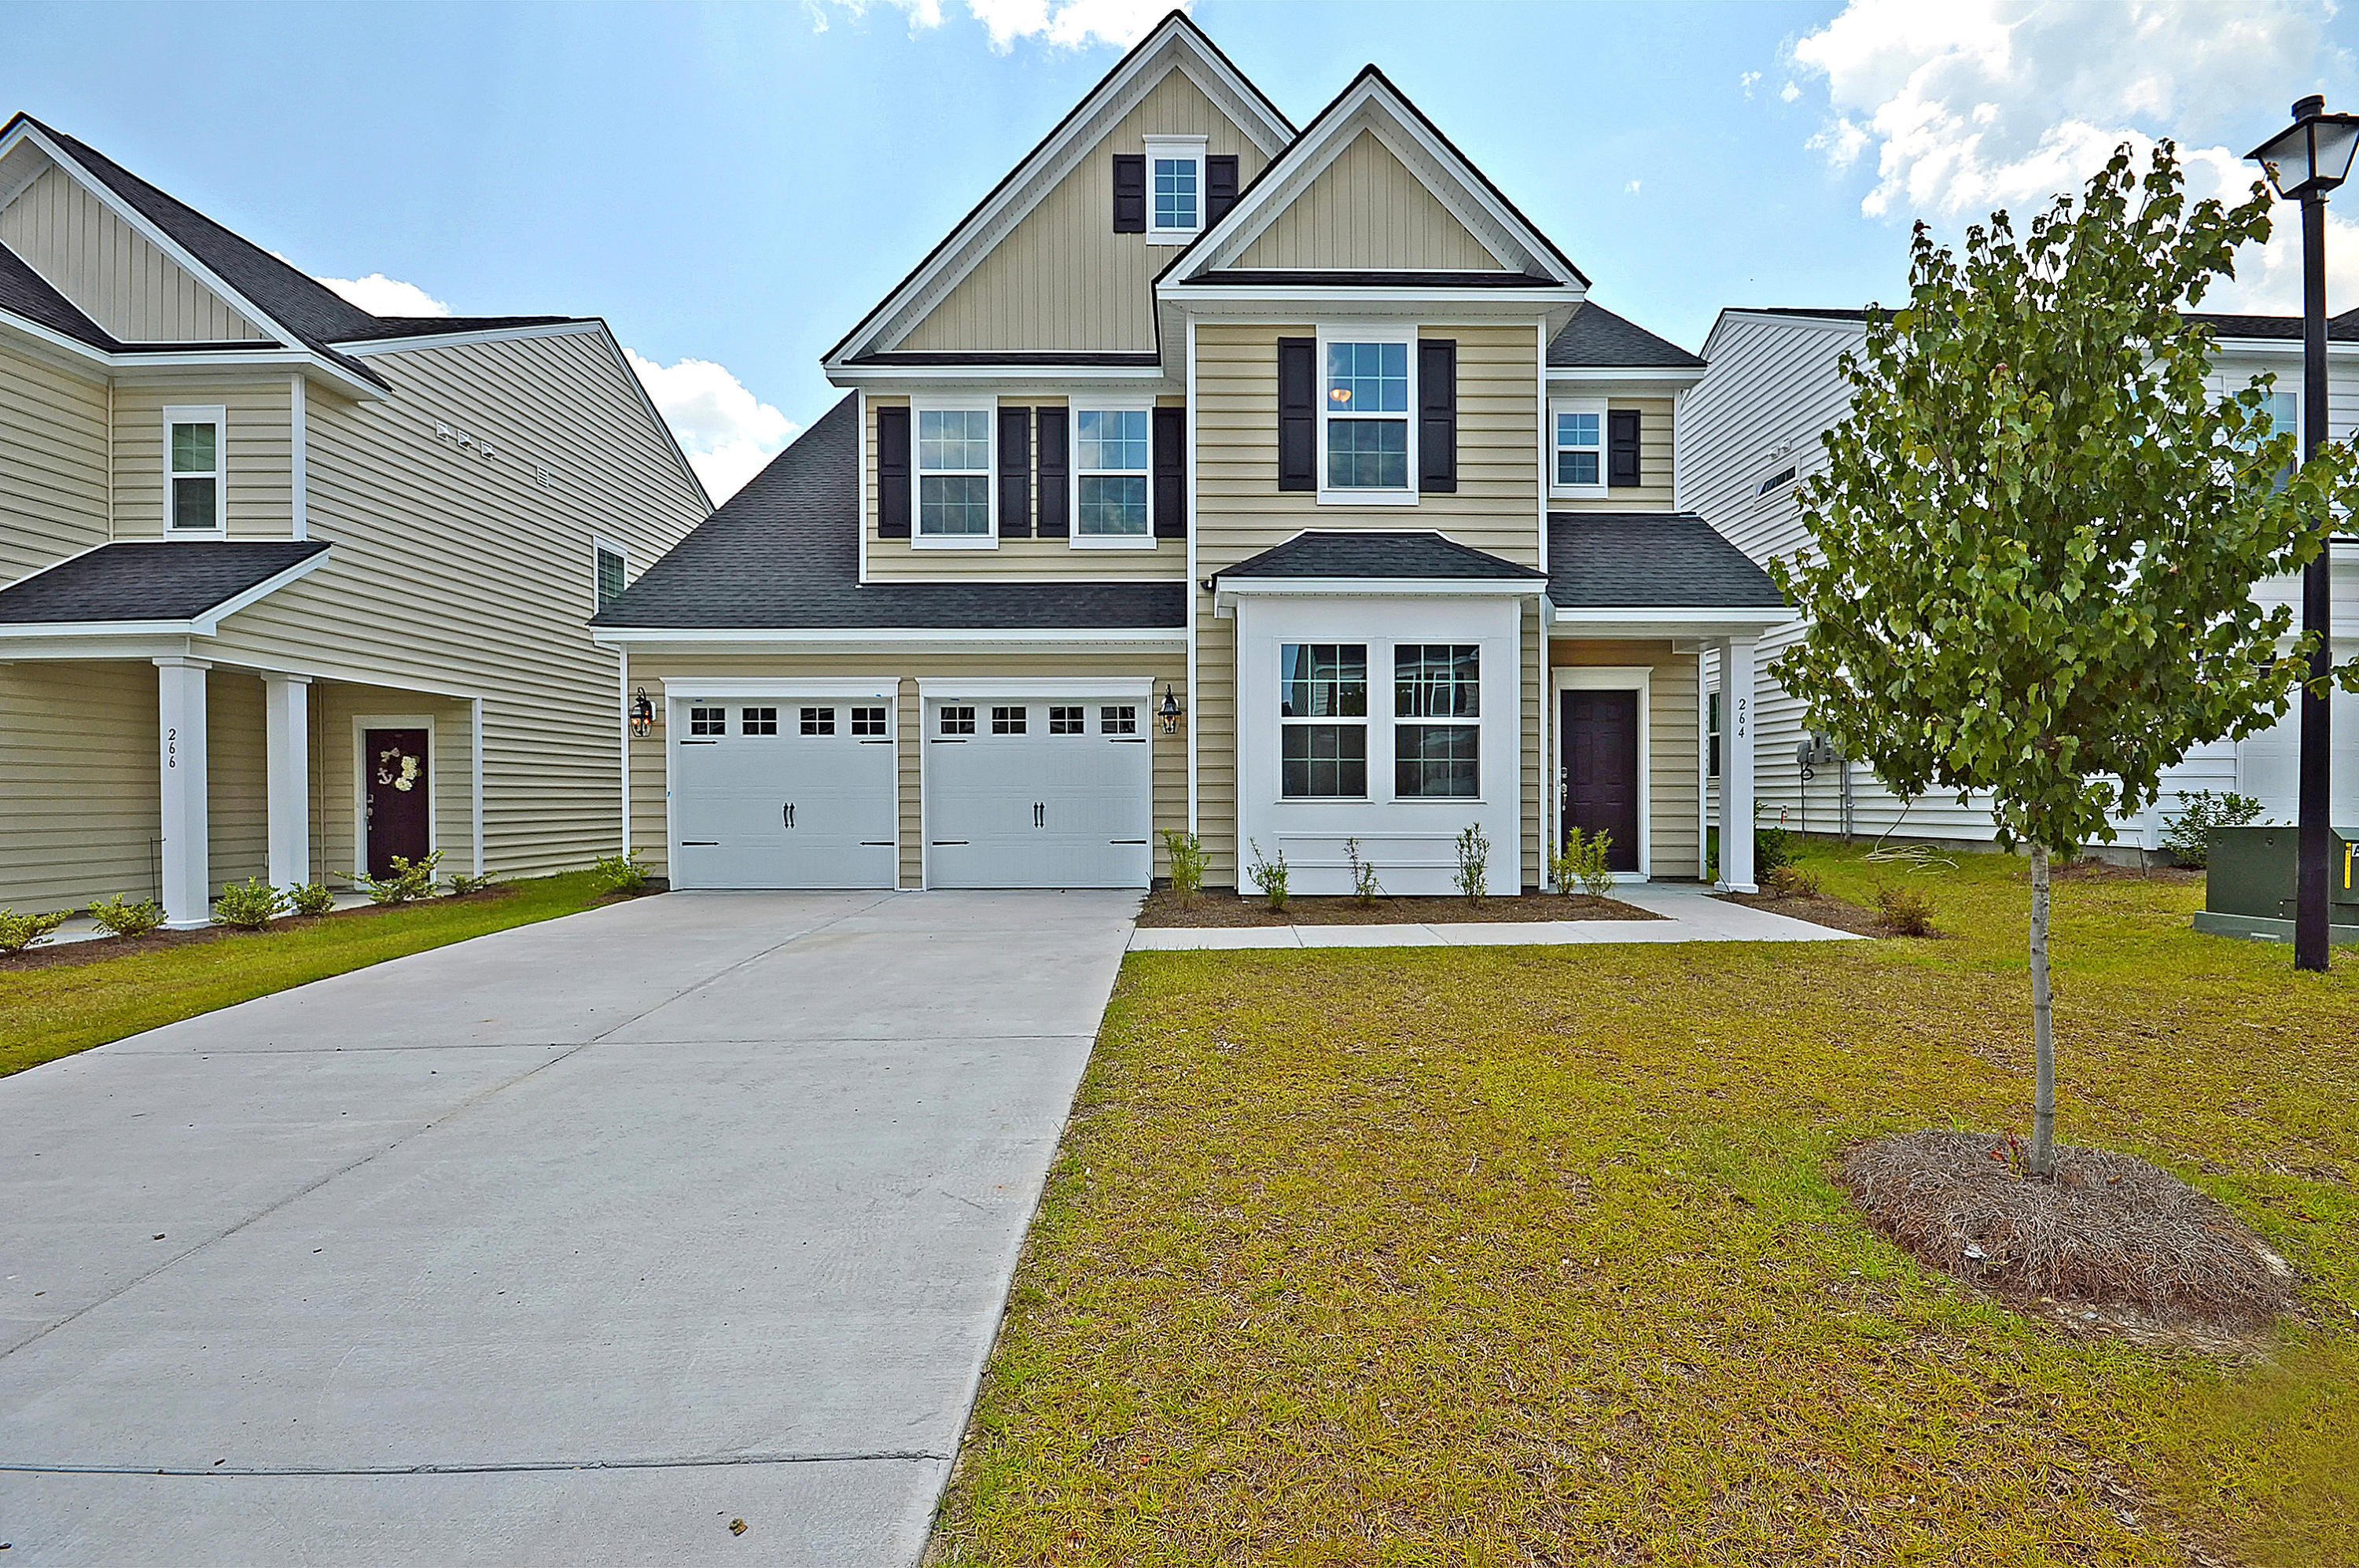 103 Daniels Creek Circle Goose Creek, Sc 29445